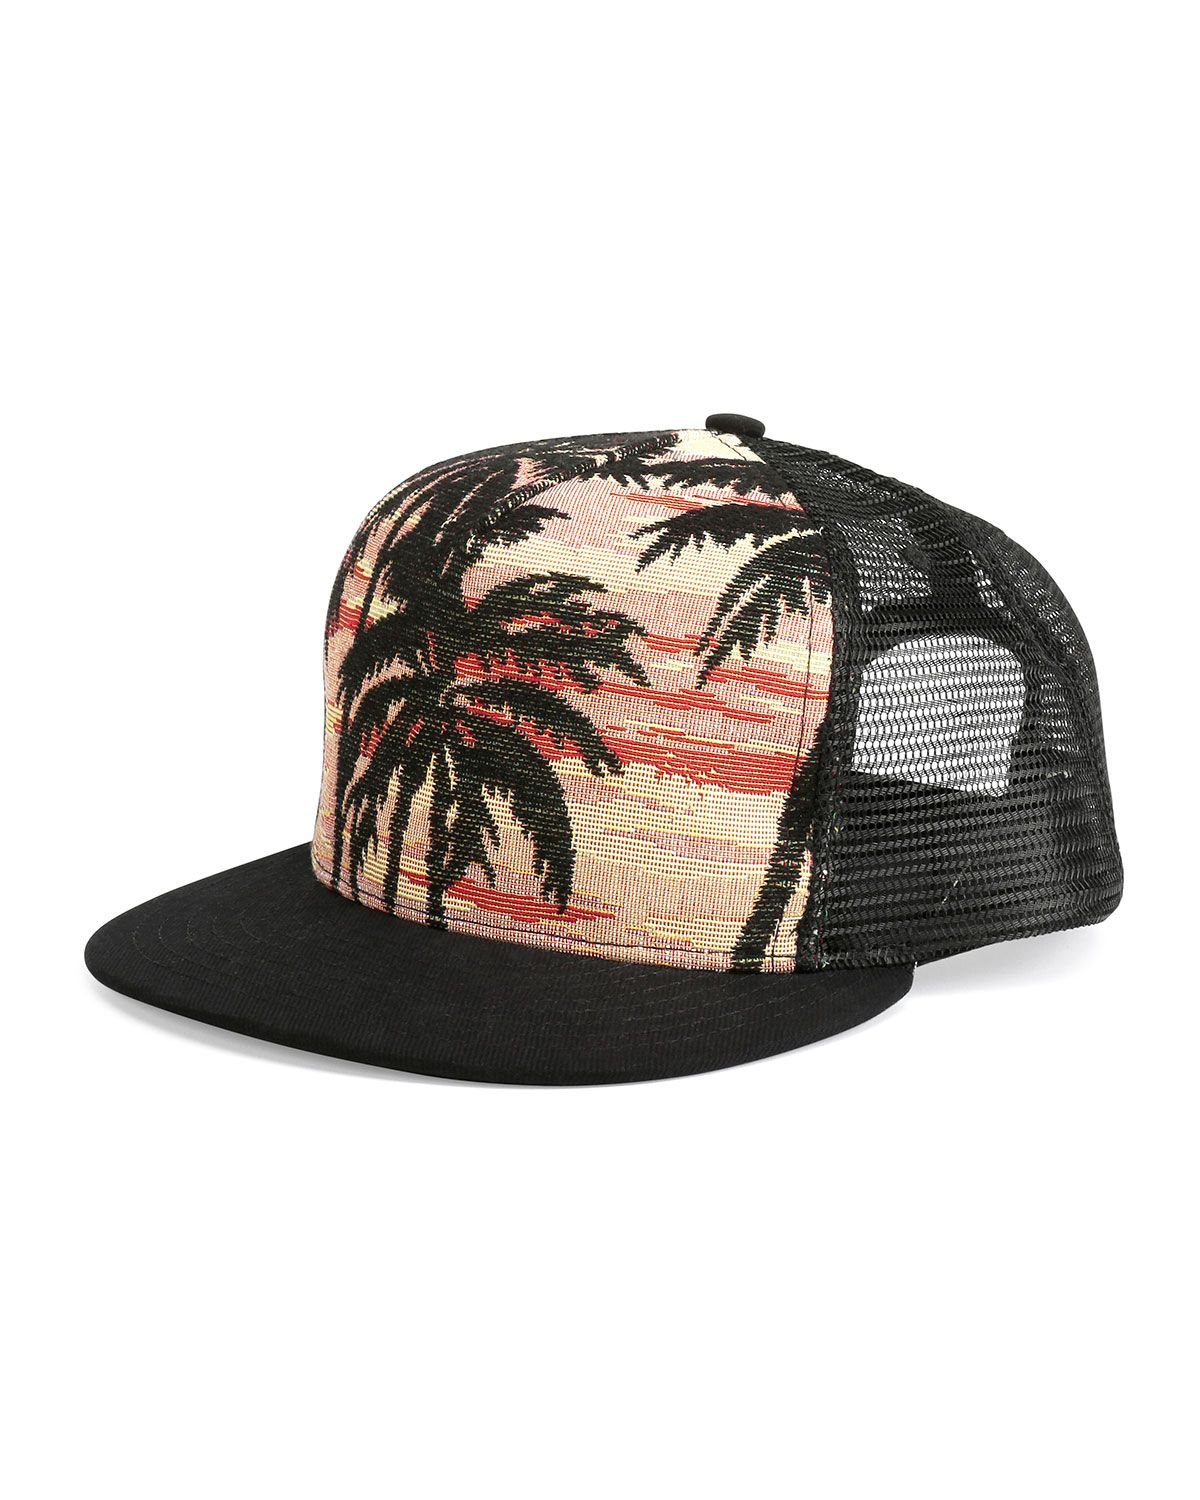 eab631d5c32 Yves Saint Laurent Palm Tree Printed Flat-Bill Hat